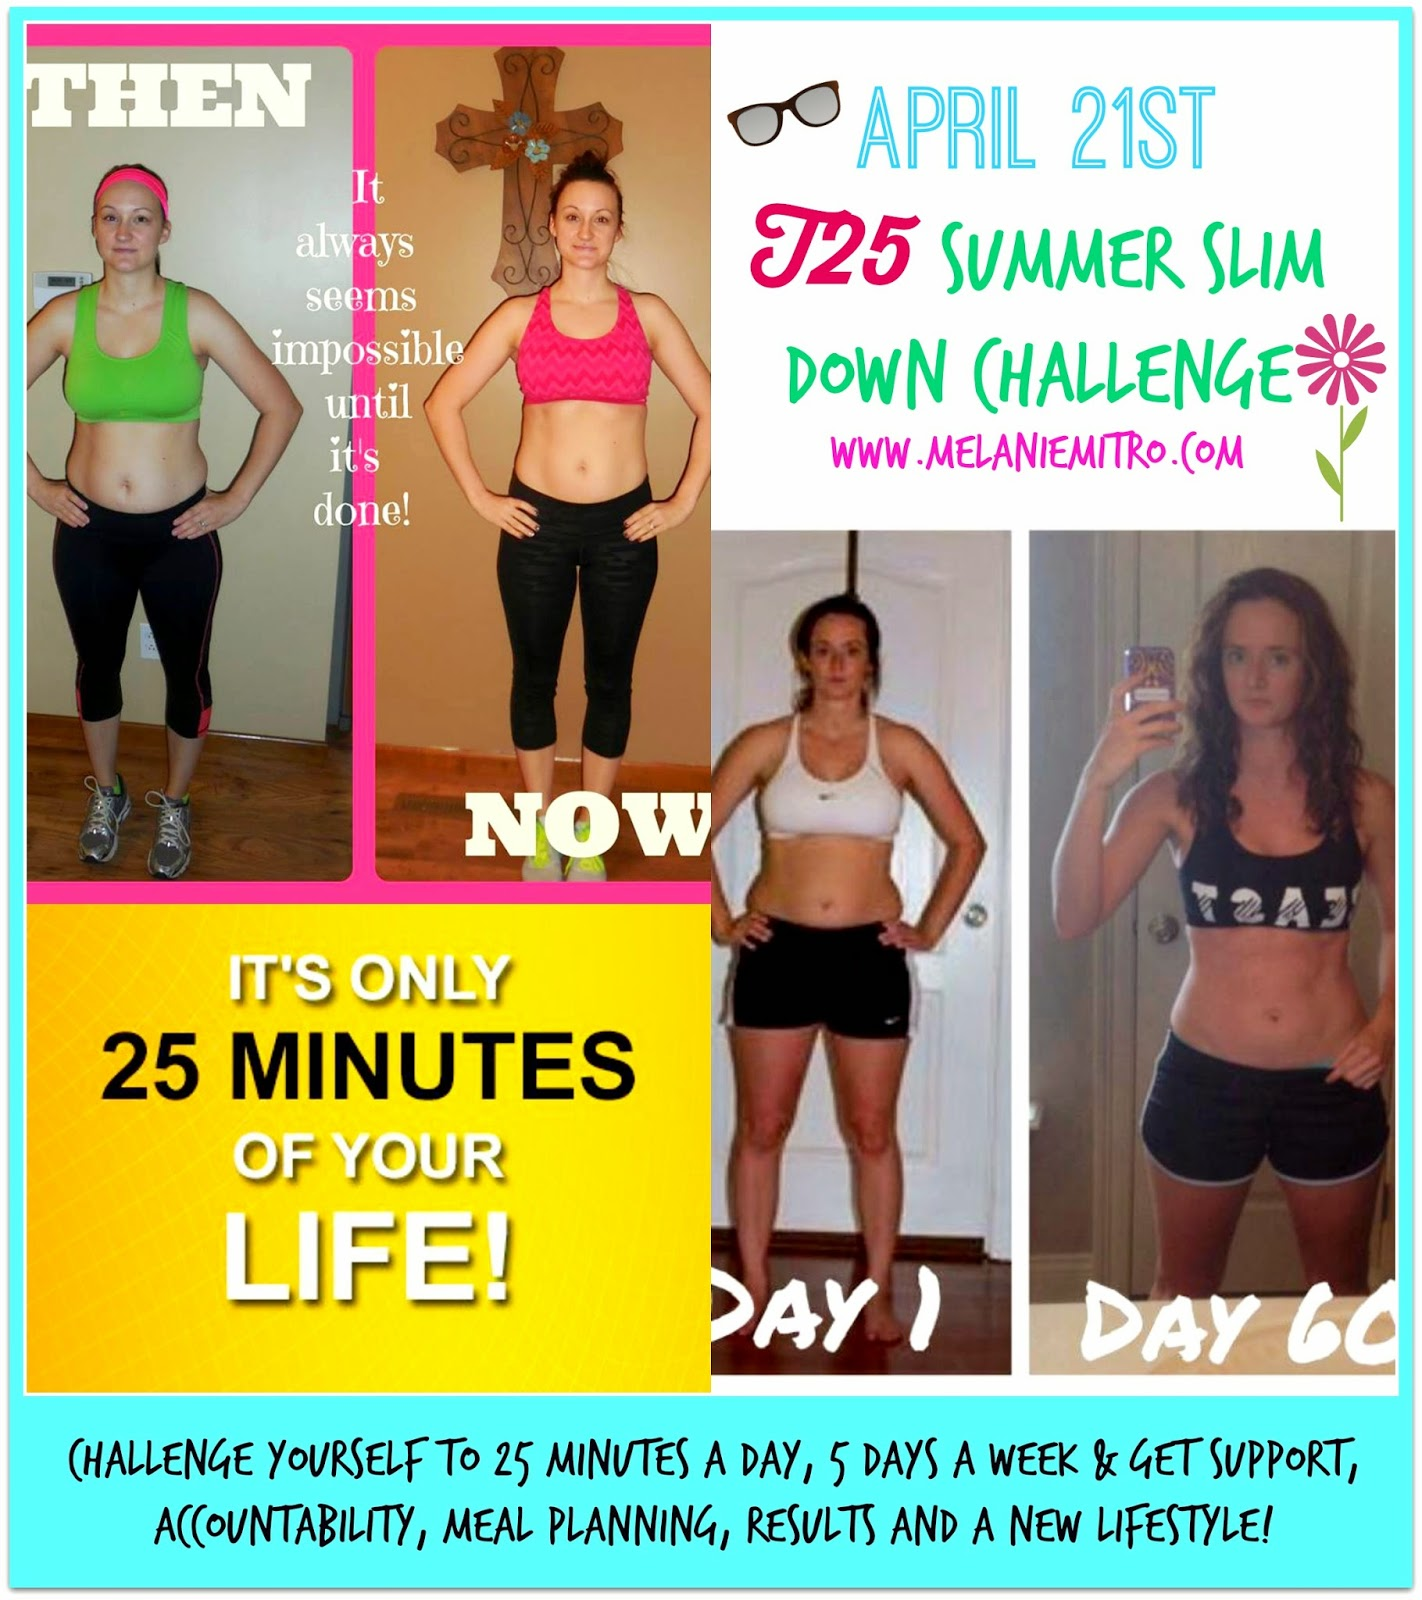 T25 Sale, Summer Slim Down Challenge, Support, Accountability, Motivation